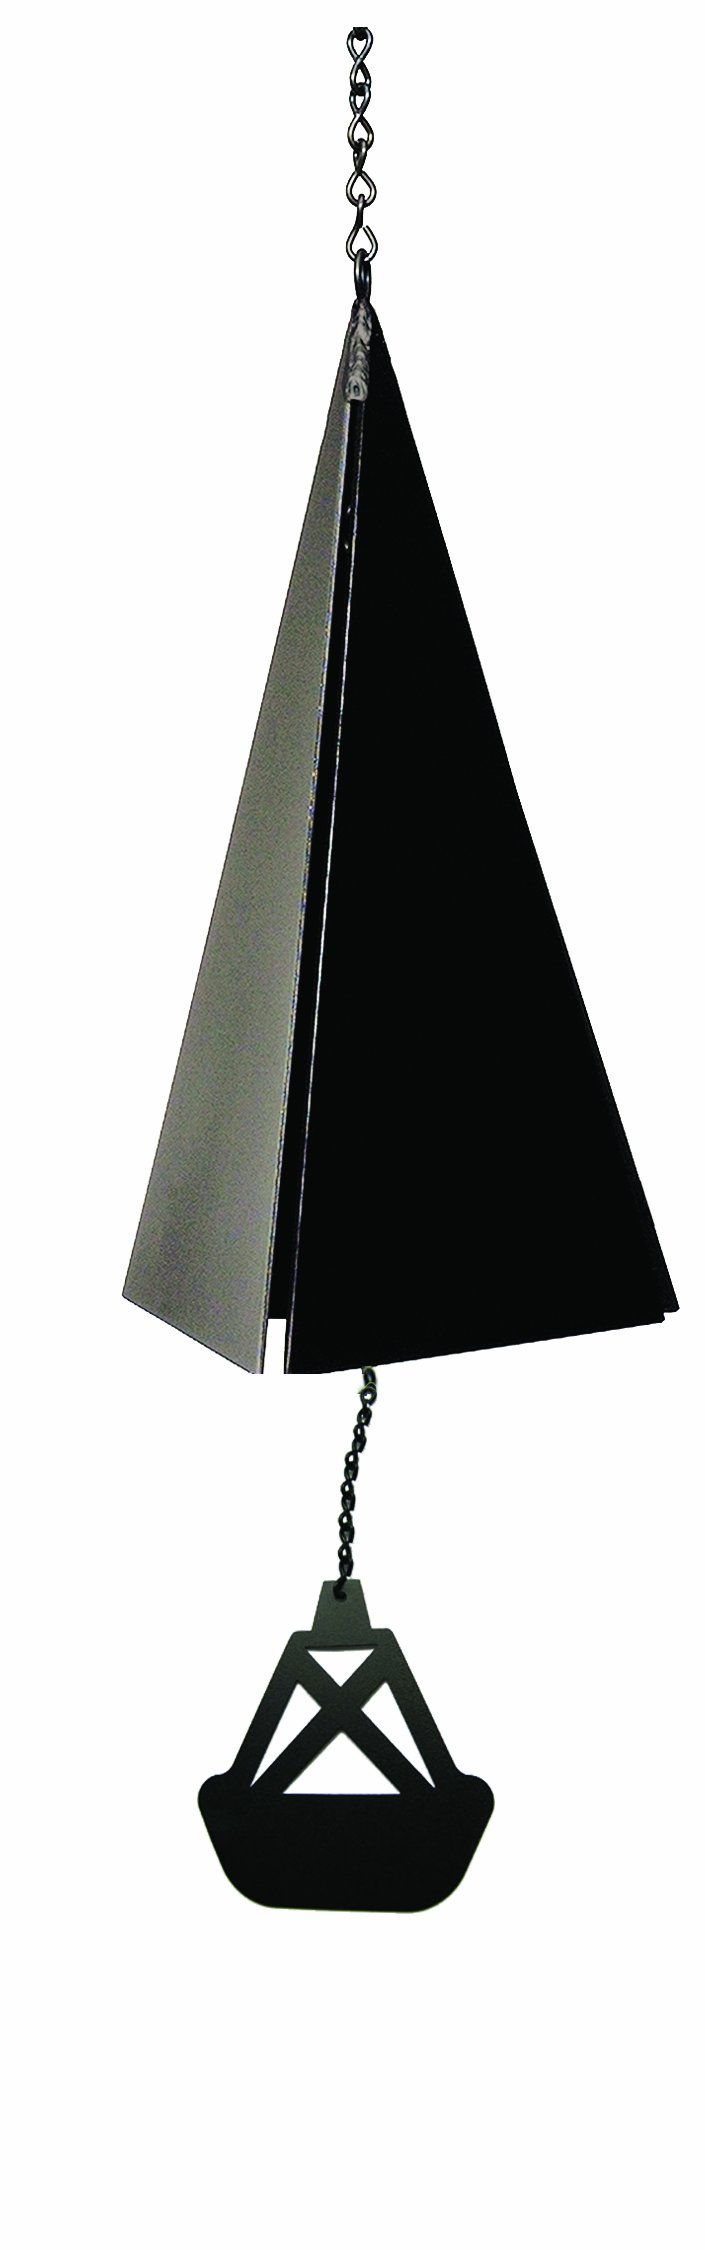 North Country Wind Bells Nantucket Bell Windcatcher with Black Bell Buoy